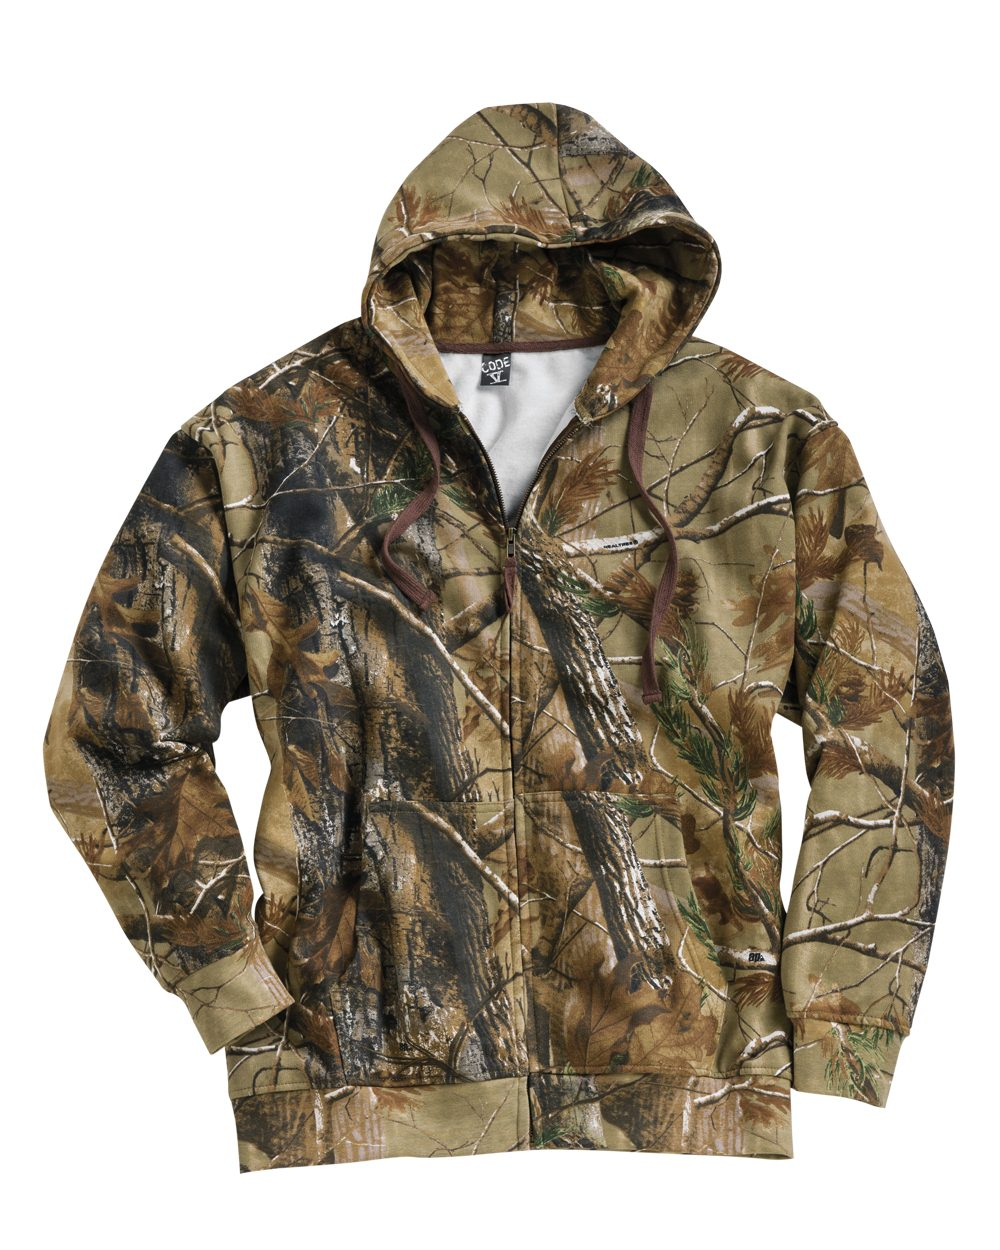 Code V 3989 - Realtree Hooded Full-Zip Sweatshirt